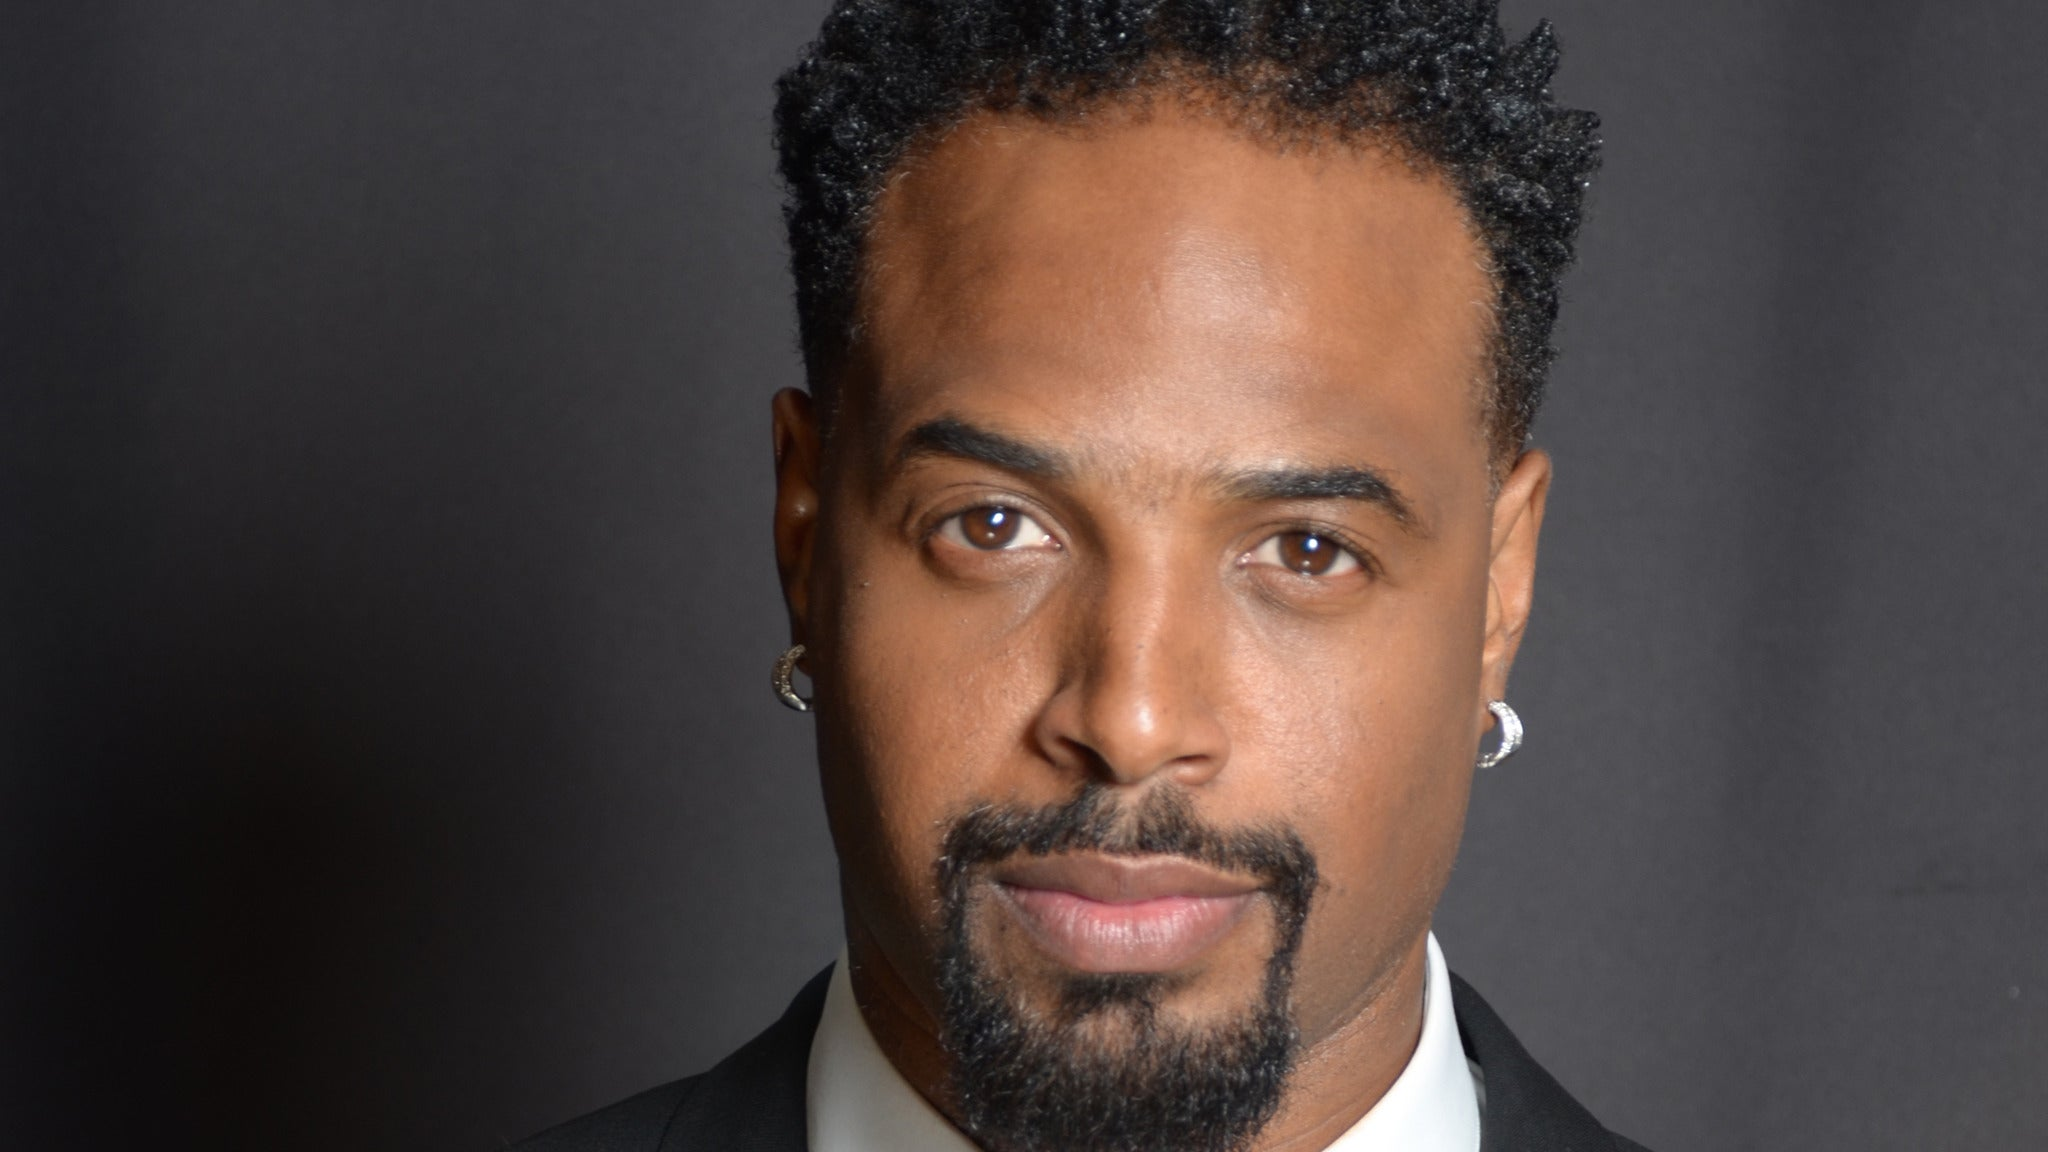 Shawn Wayans at Chicago Improv